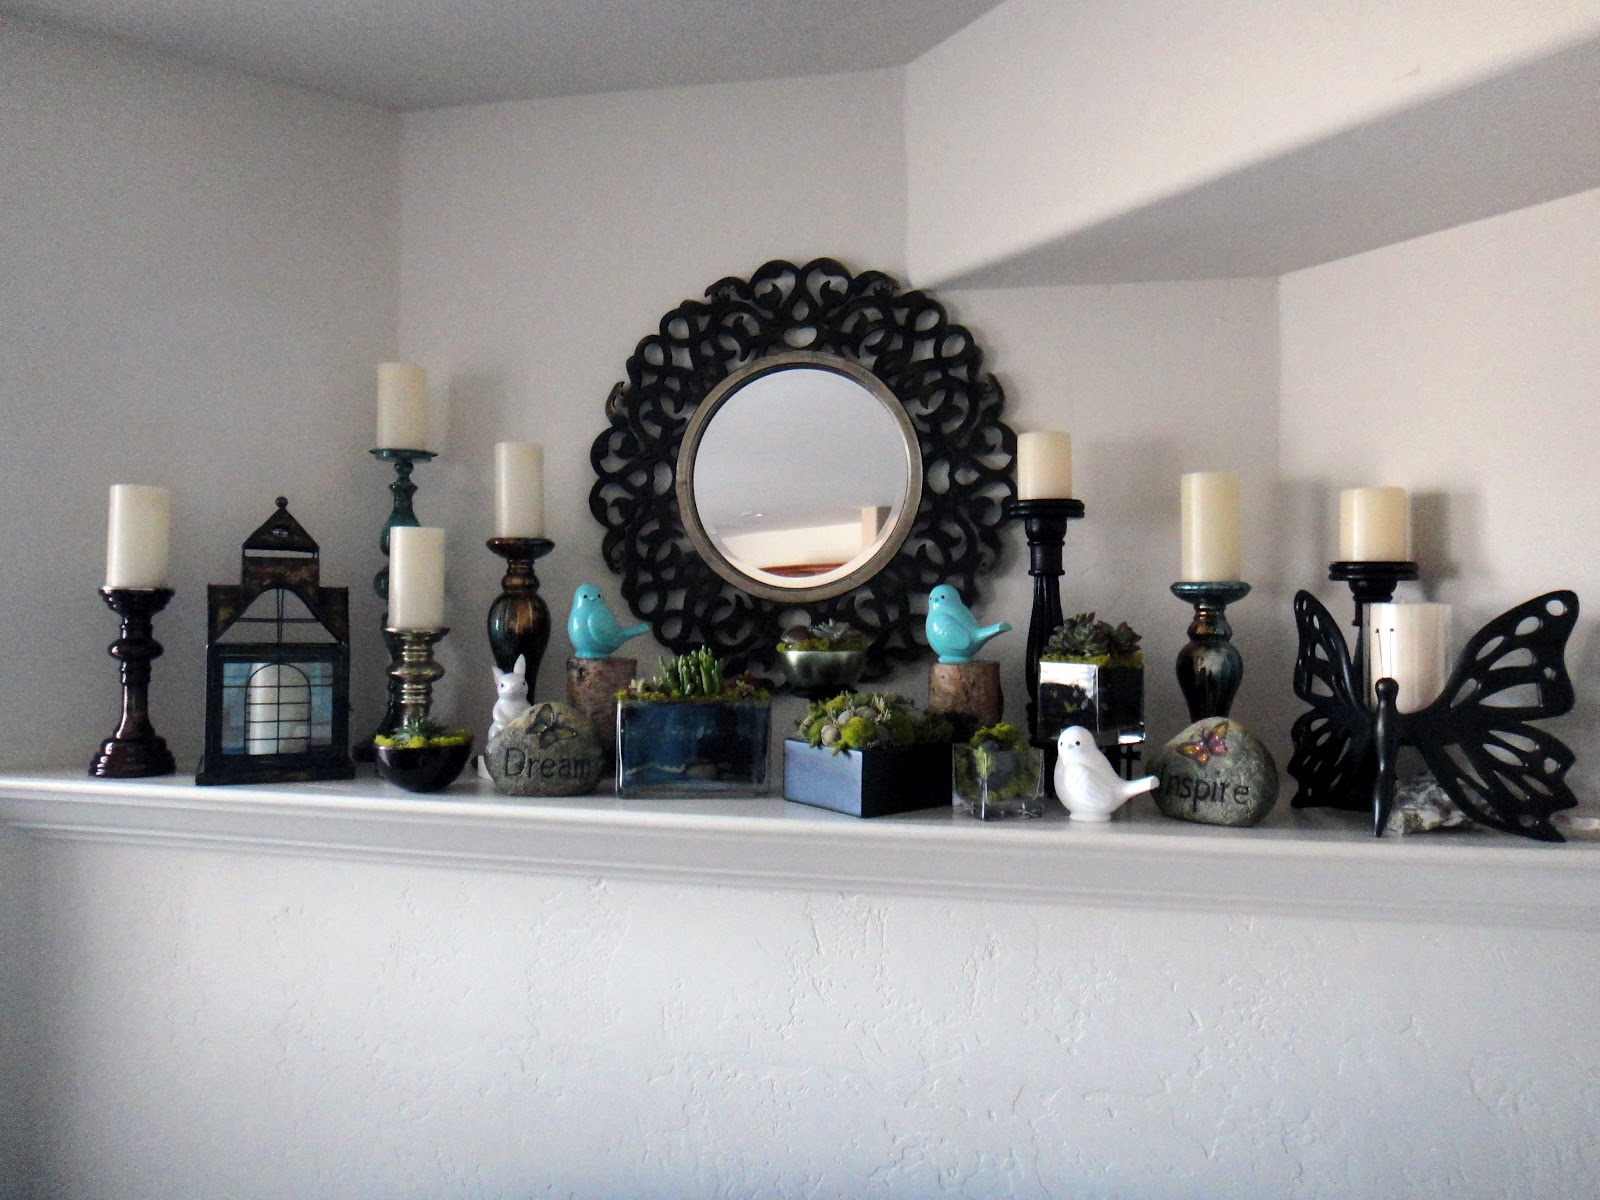 The Best Christmas Mantel Decorations